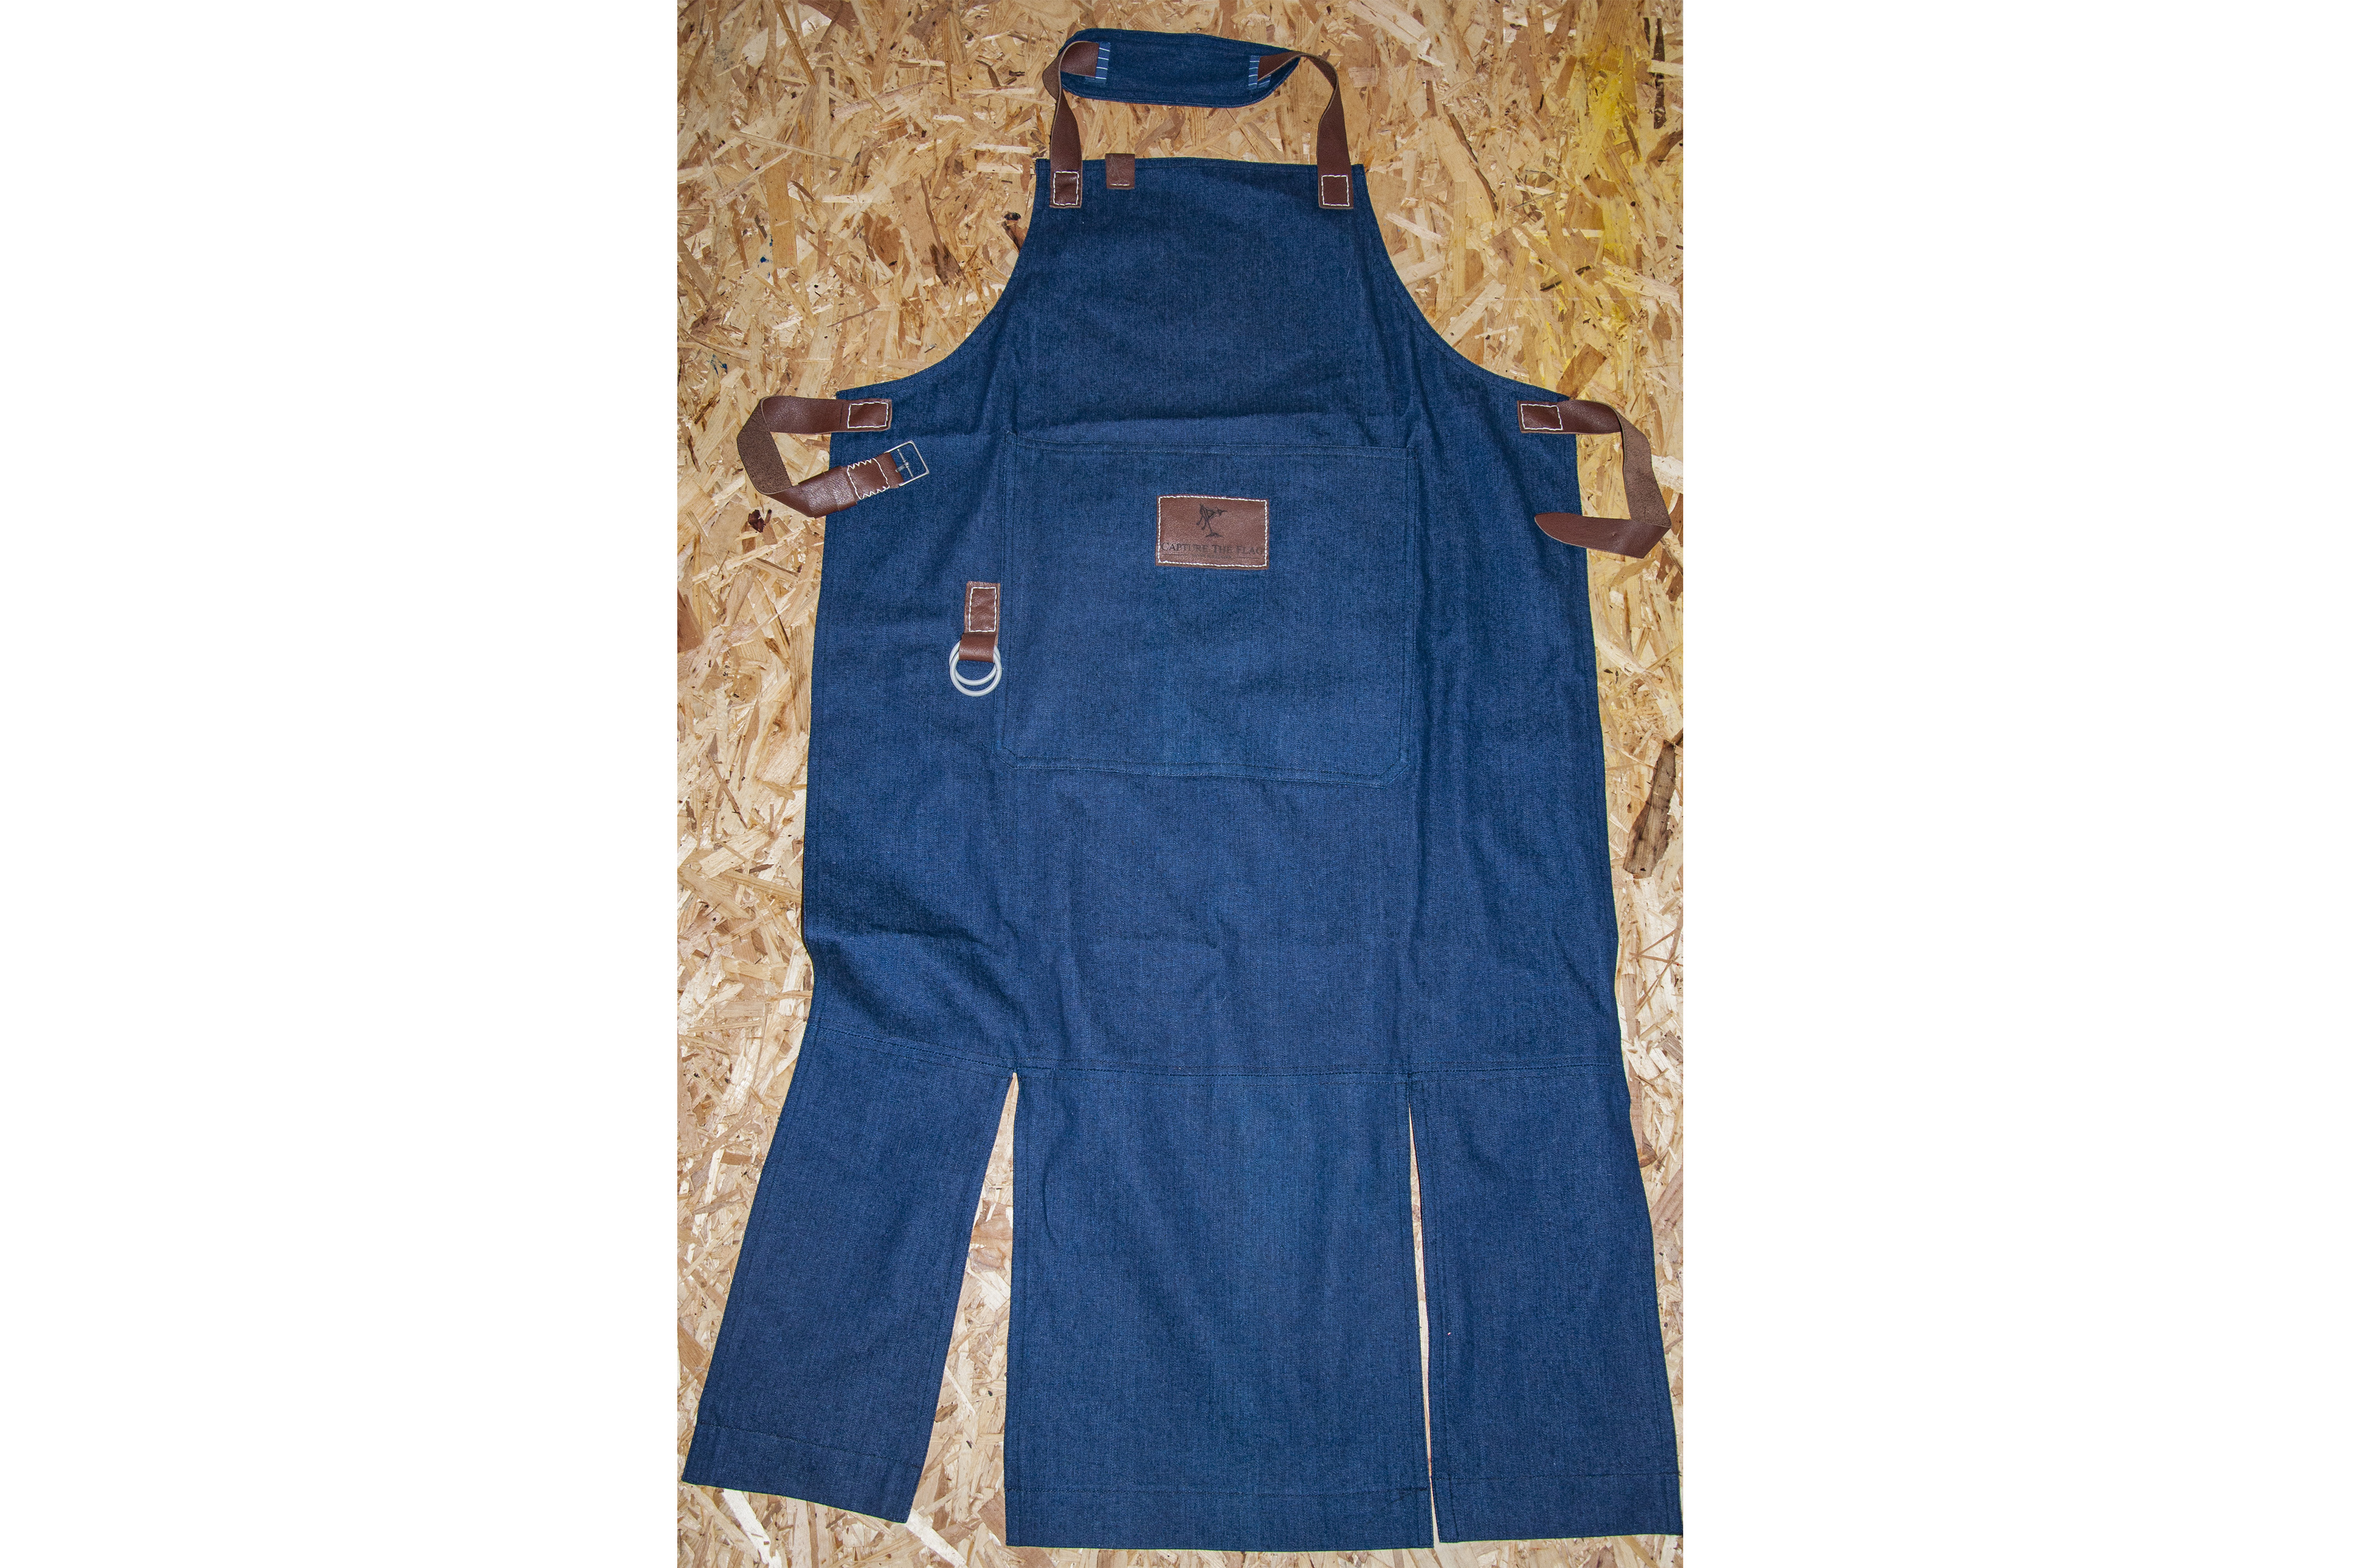 Stylepic_Apron_1